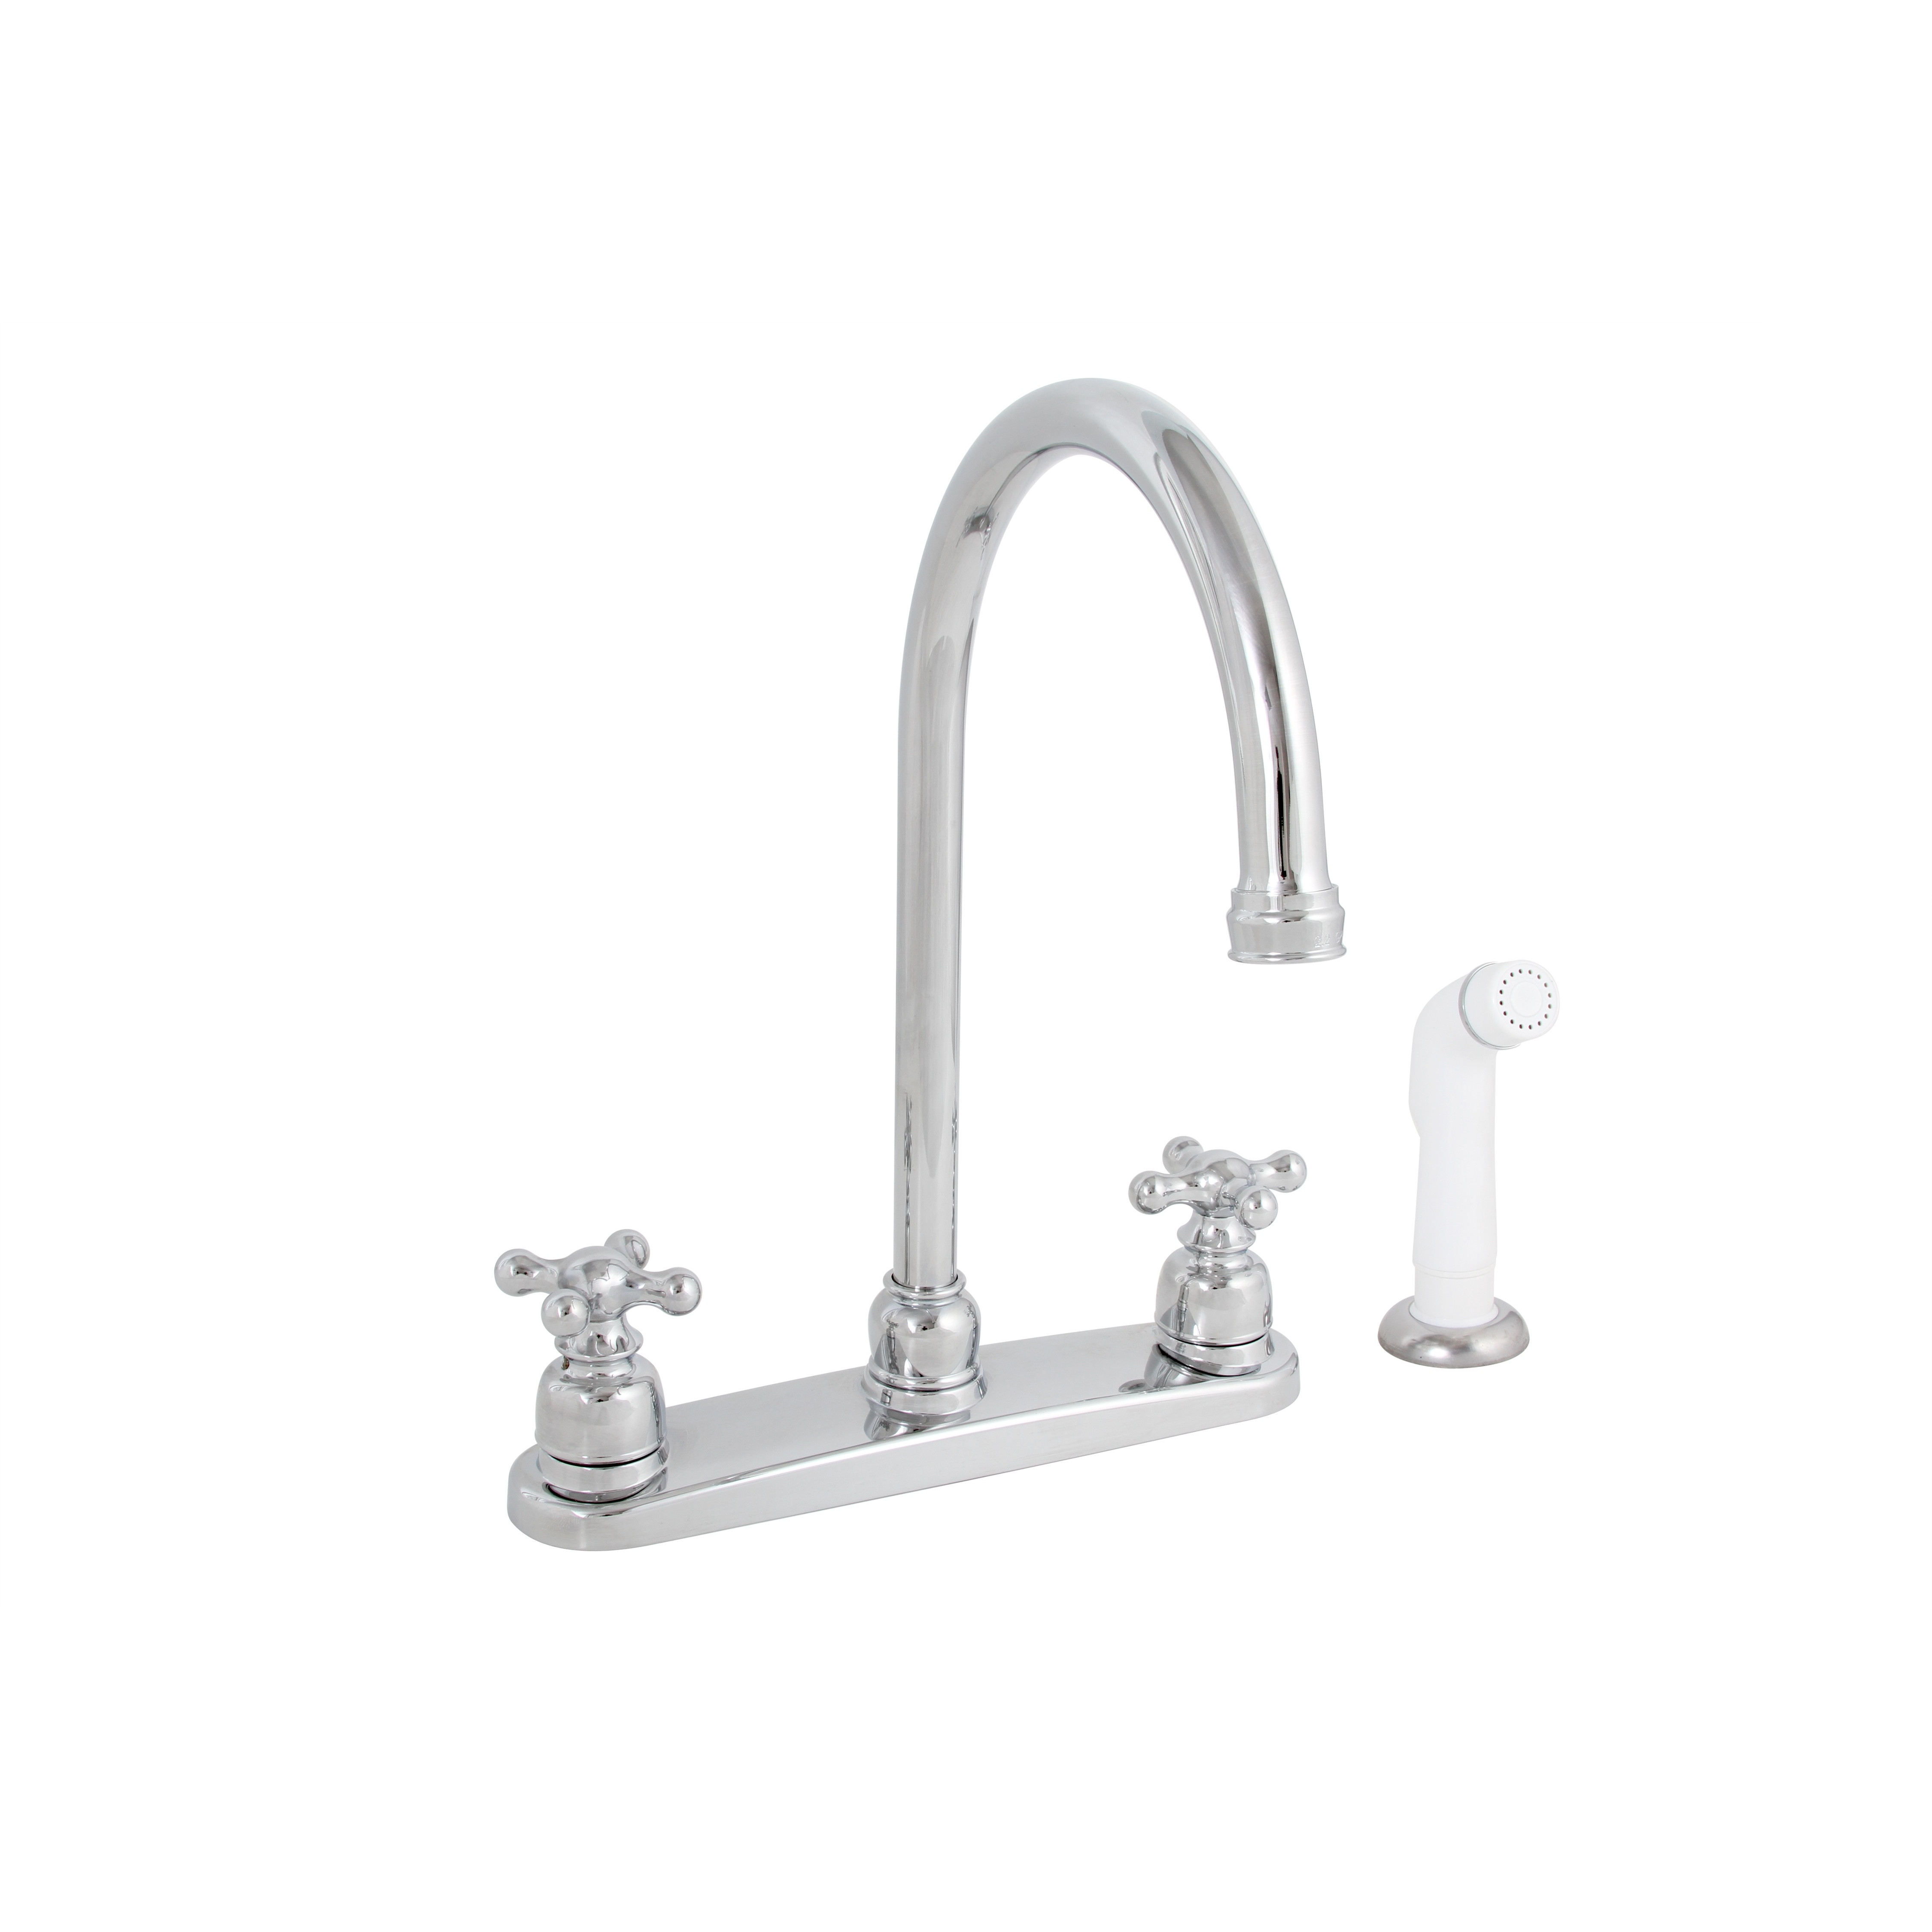 Ideas, premier brushed nickel kitchen faucet with sprayer premier brushed nickel kitchen faucet with sprayer bathroom elegant premier faucets for your bathroom and kitchen 4500 x 4500  .